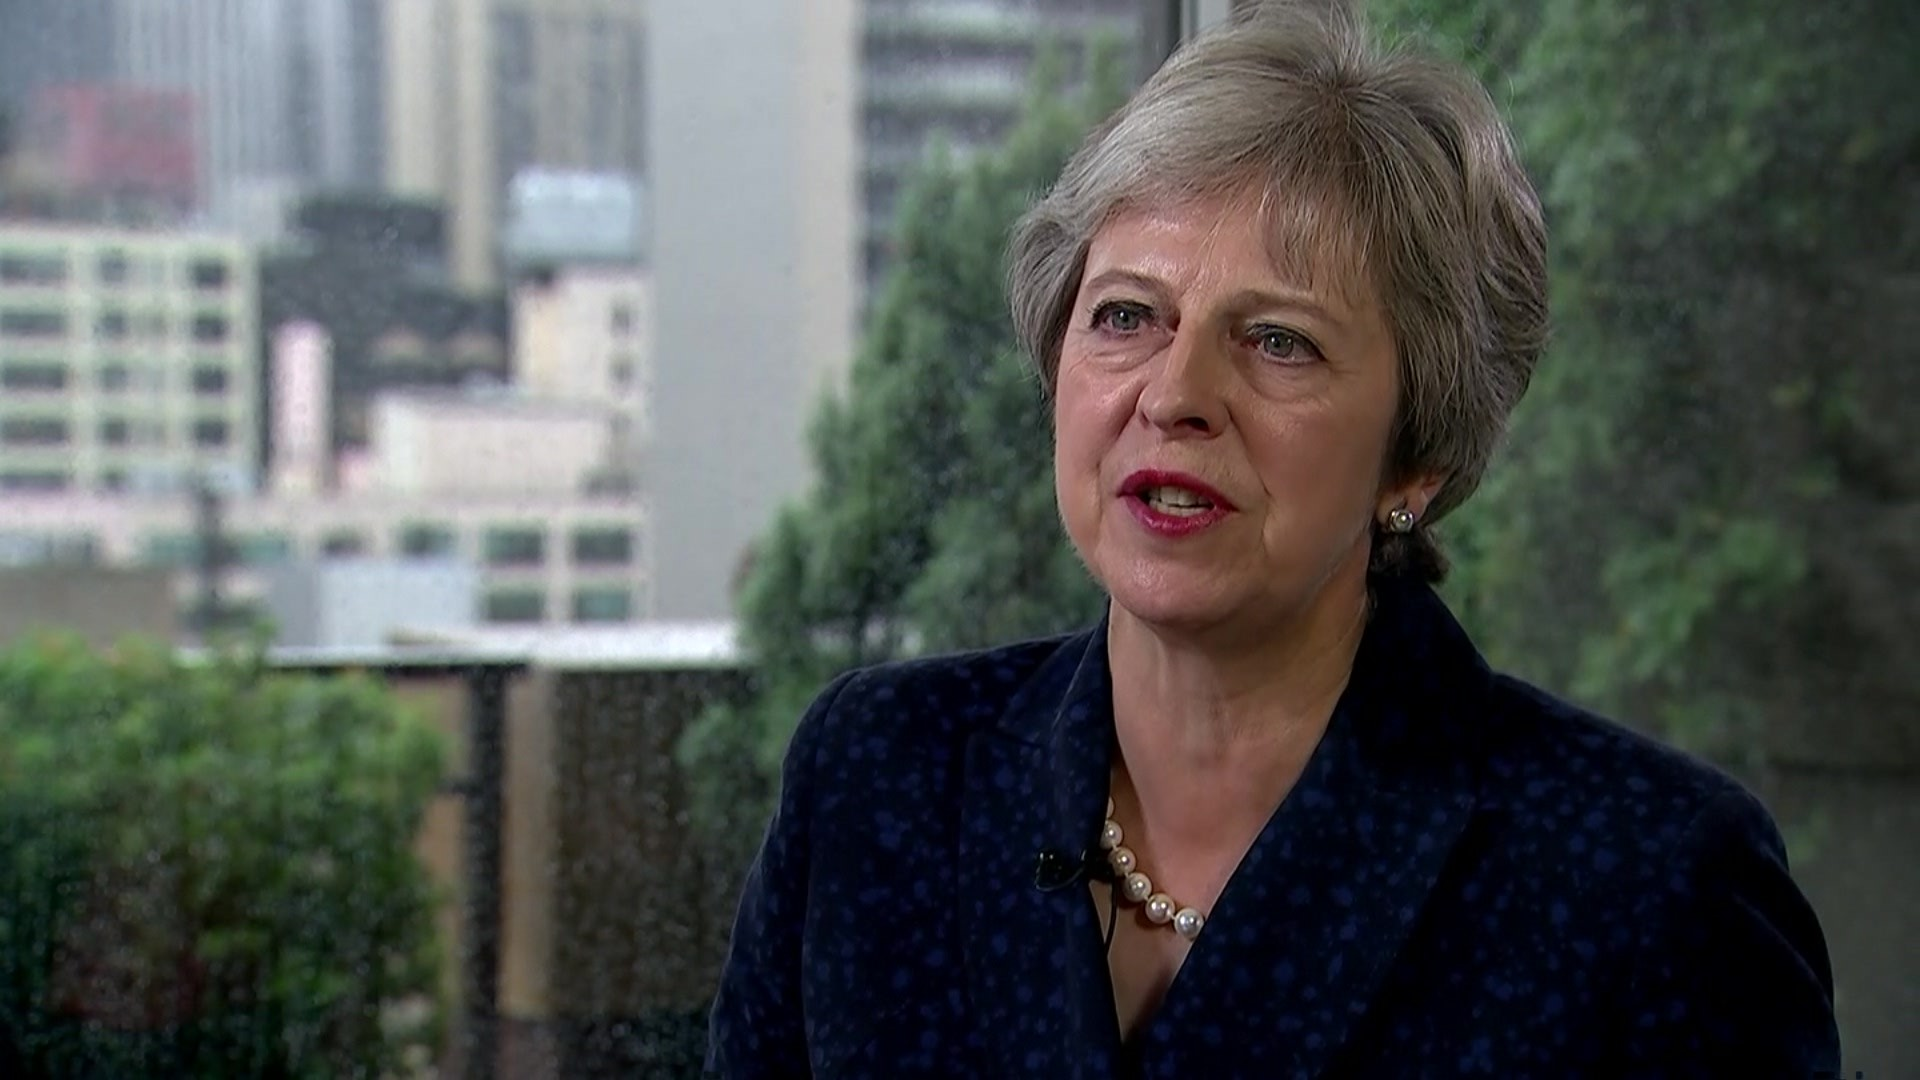 Theresa May: A general election isn't in the national interest